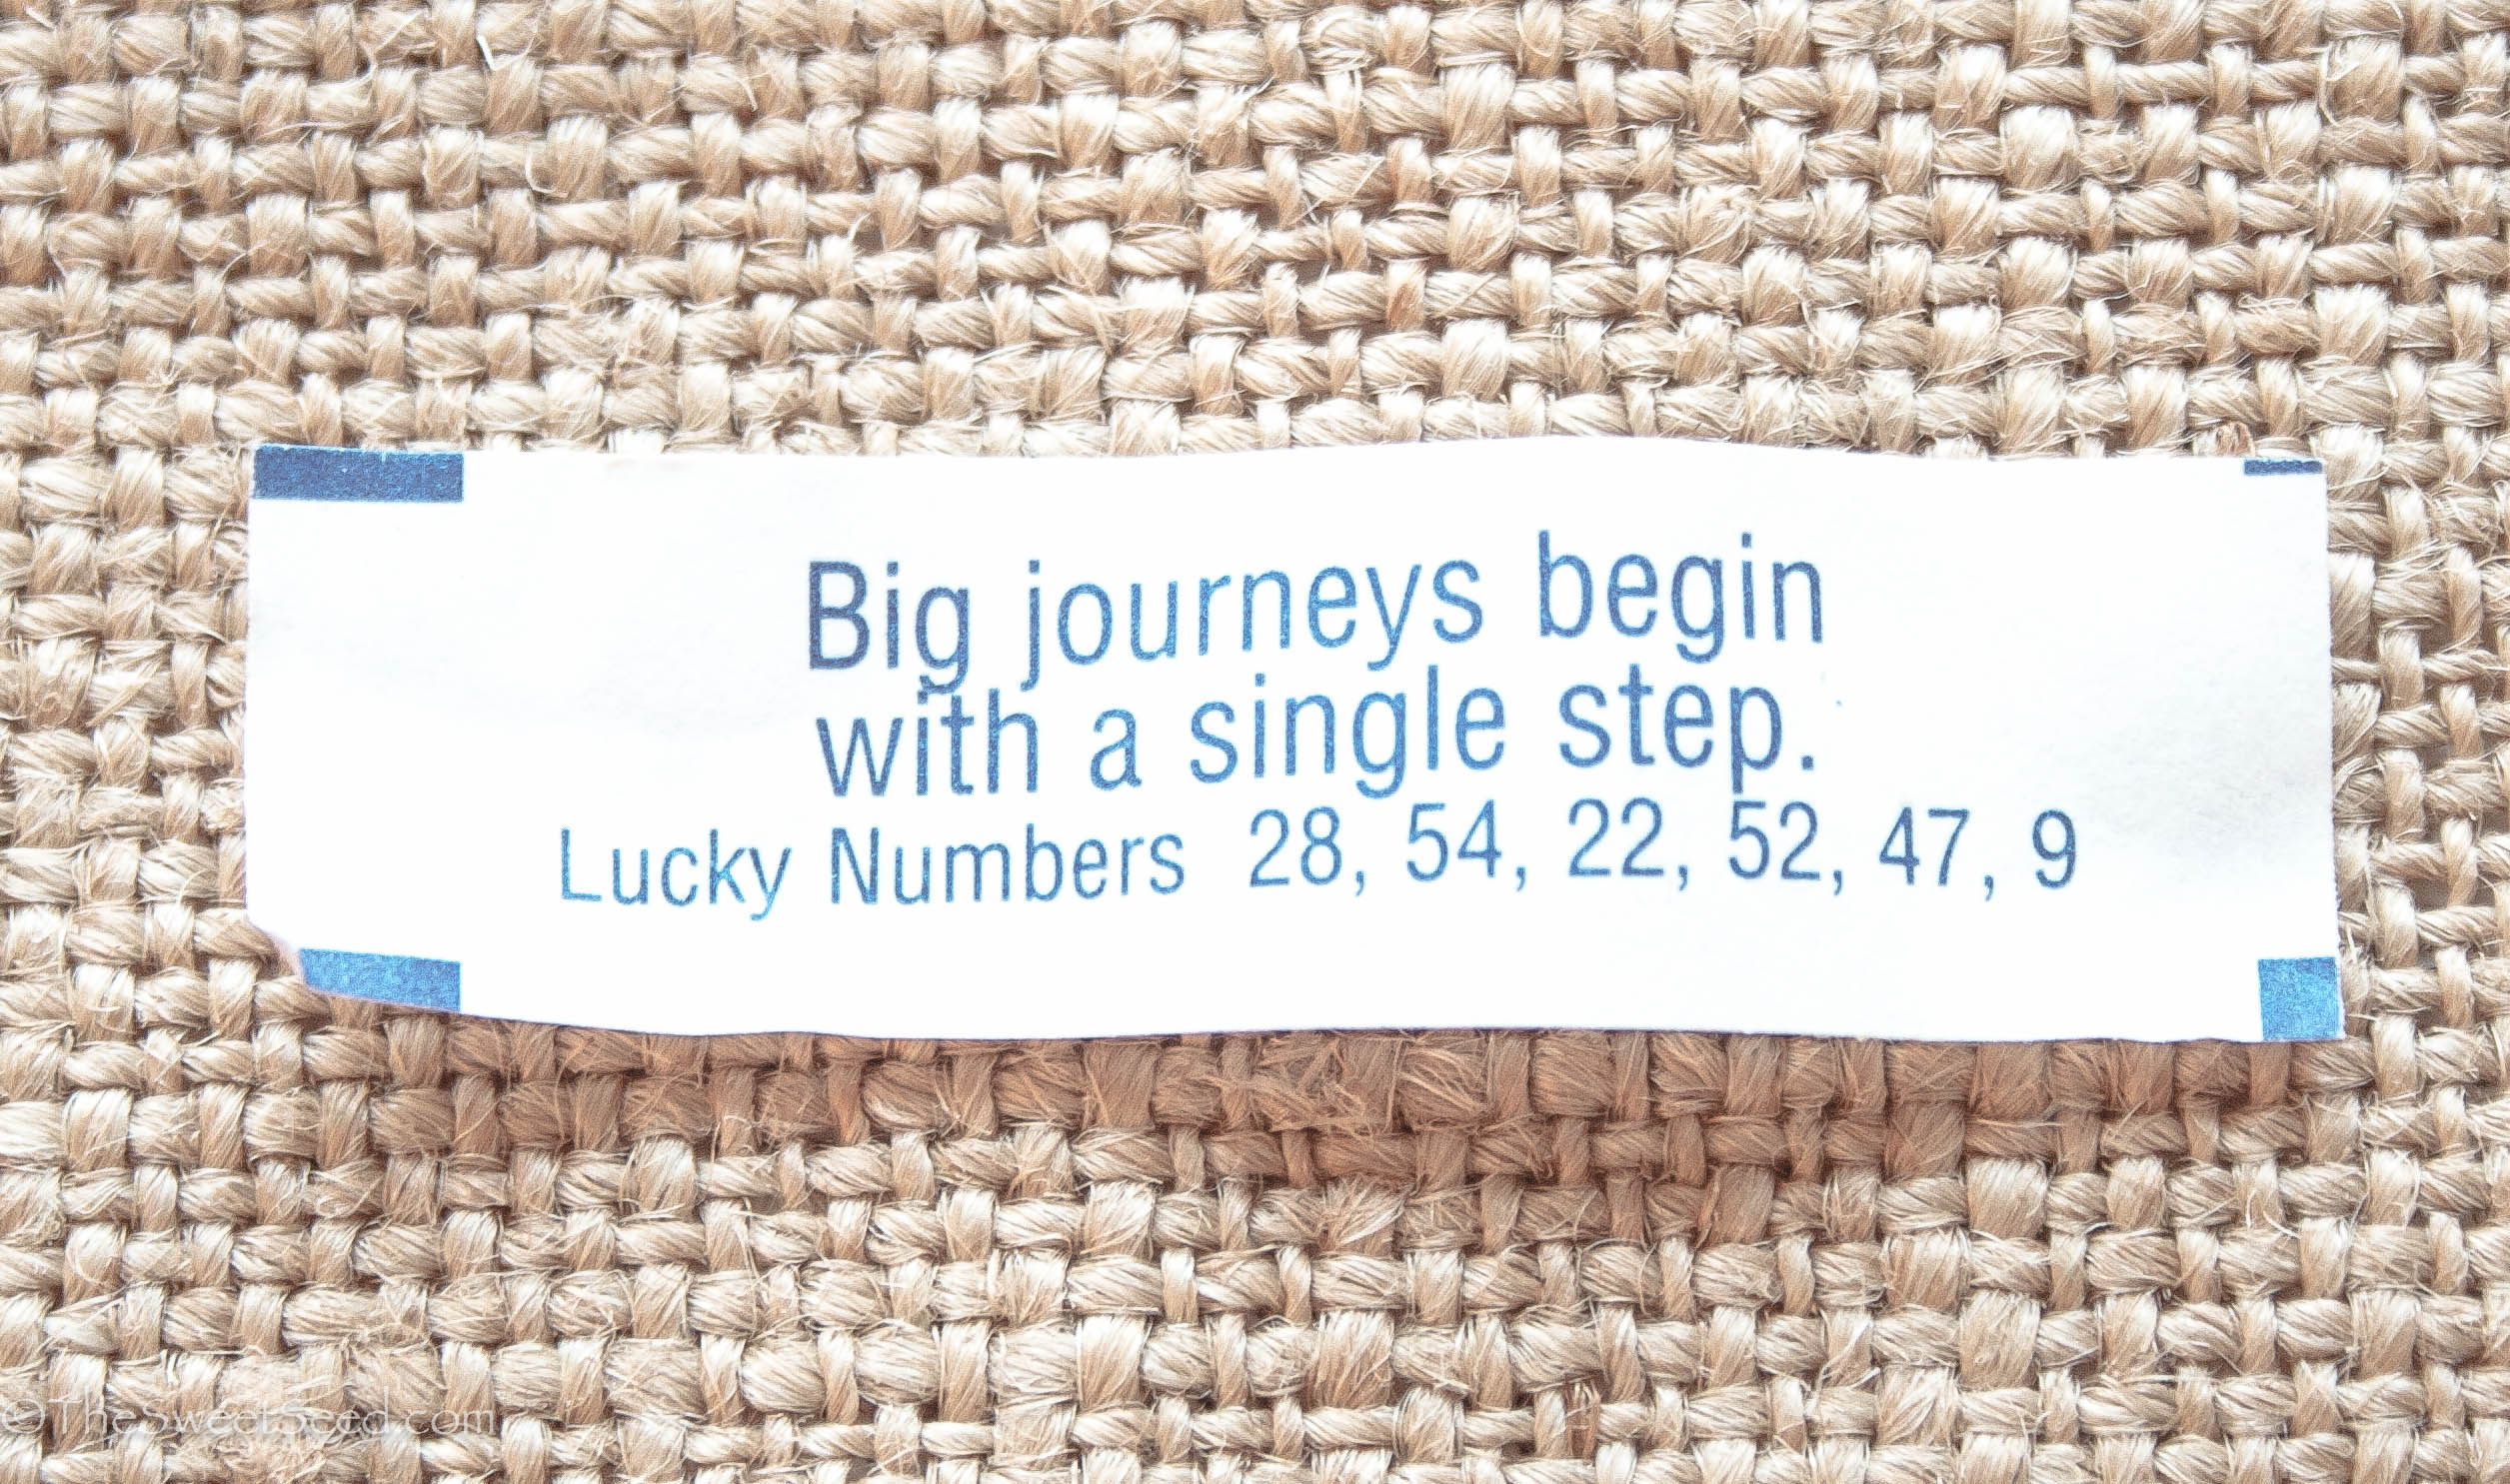 40 Best Chinese Fortune Cookies' Quotes & Sayings About Life